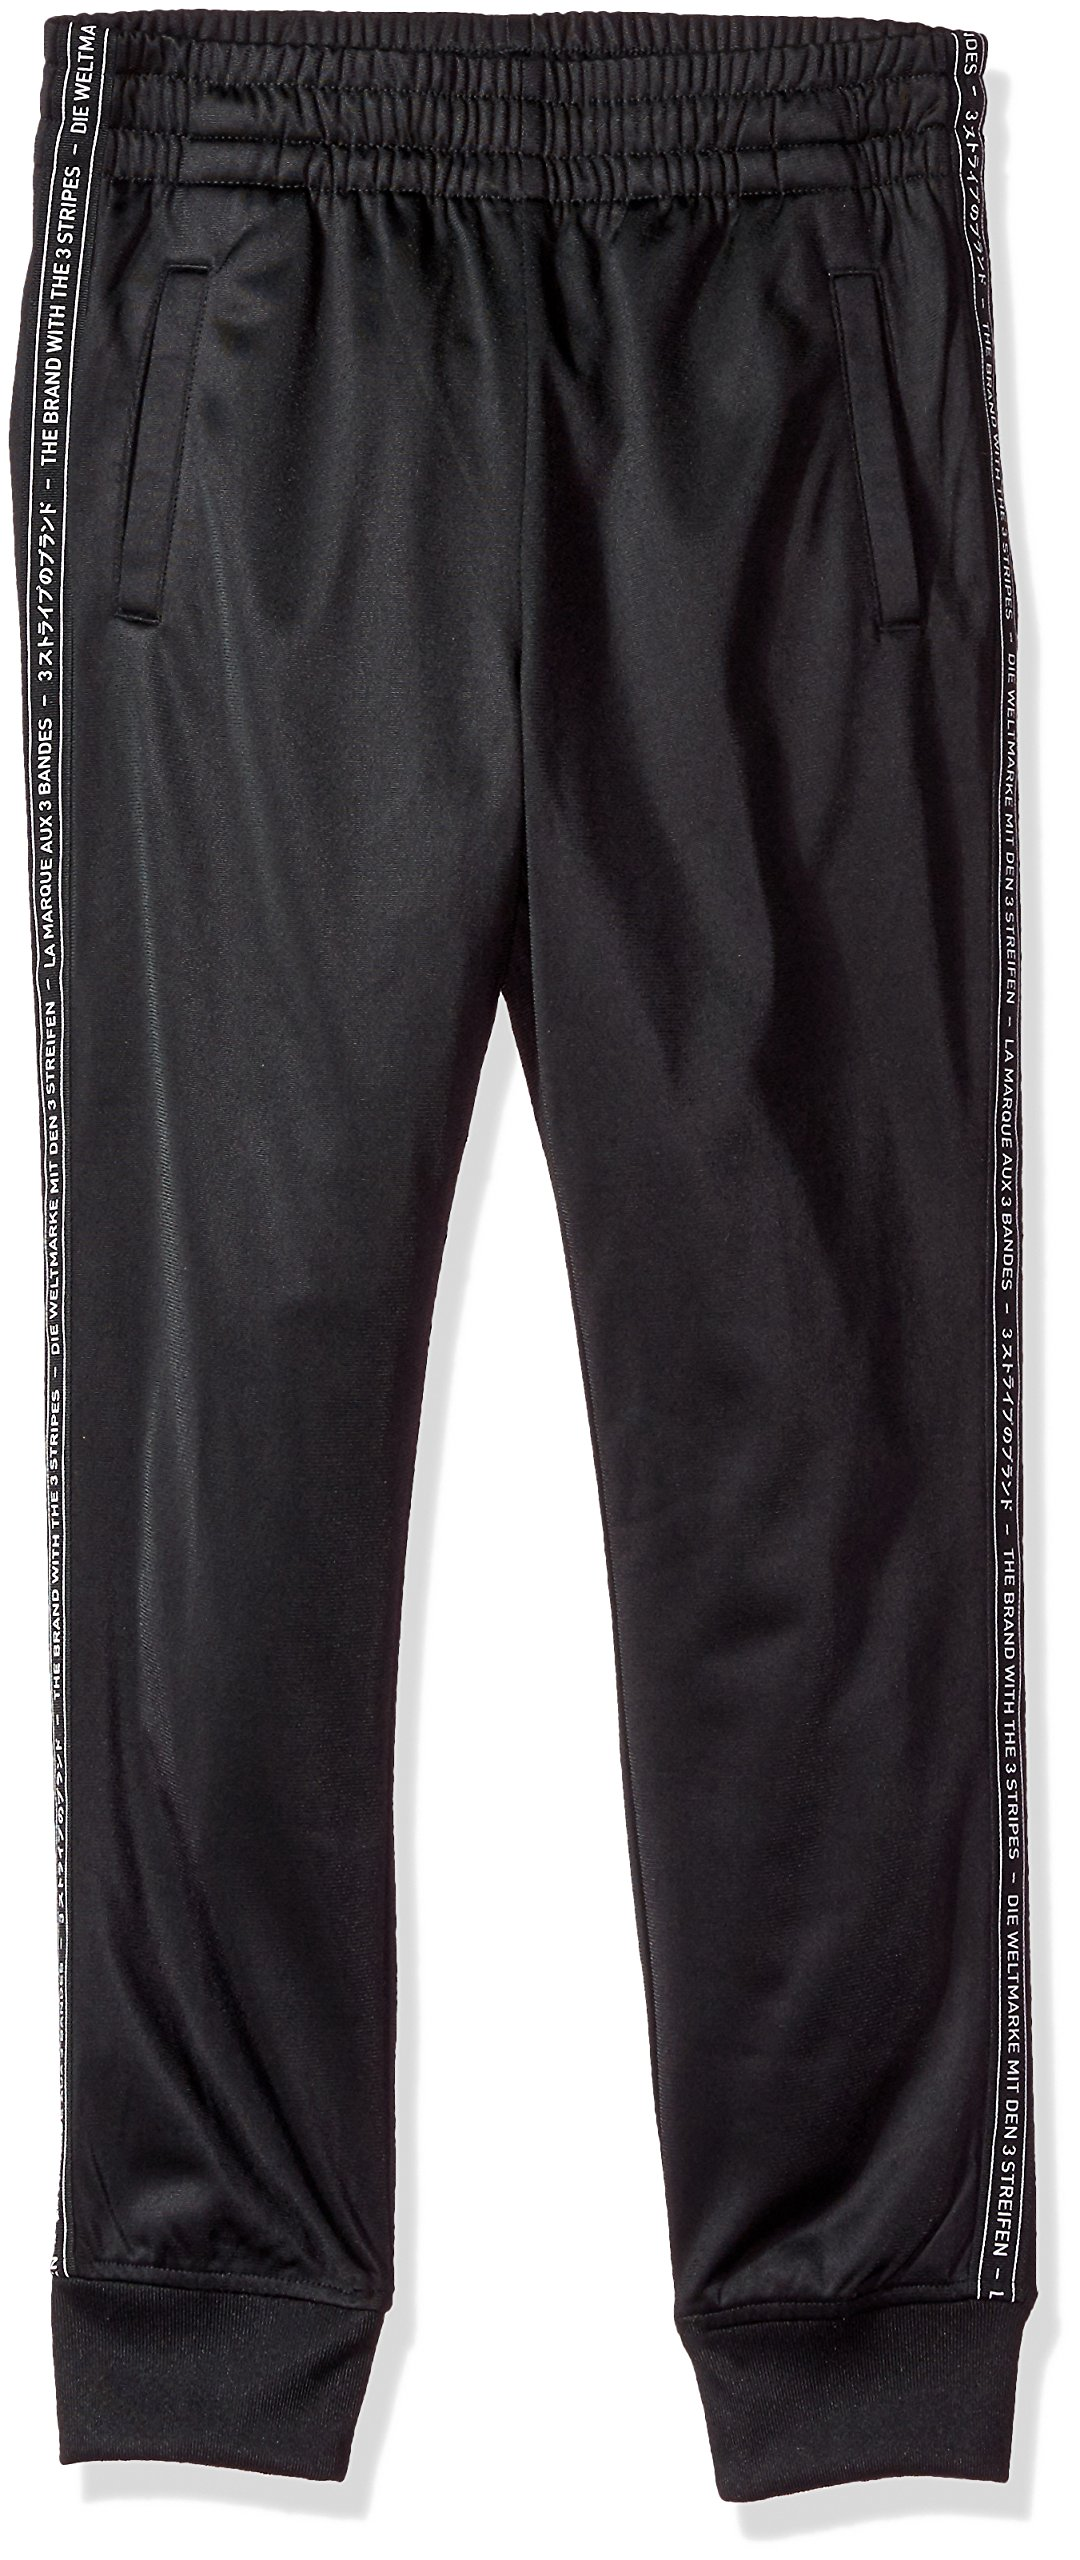 adidas Originals Bottoms Big Boys' Kids Nmd Track Pants, Black, X-Small